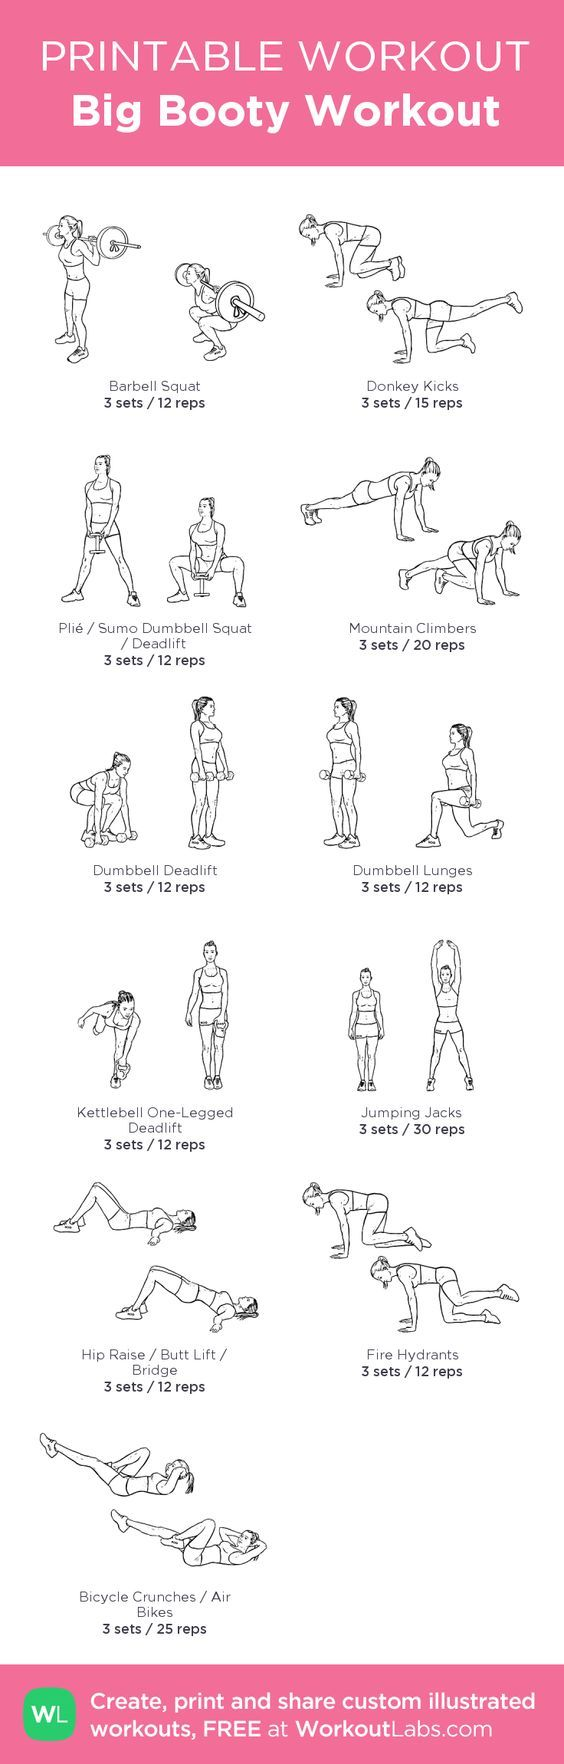 Big Booty Workout: my custom printable workout by @WorkoutLabs #workoutlabs #customworkout: